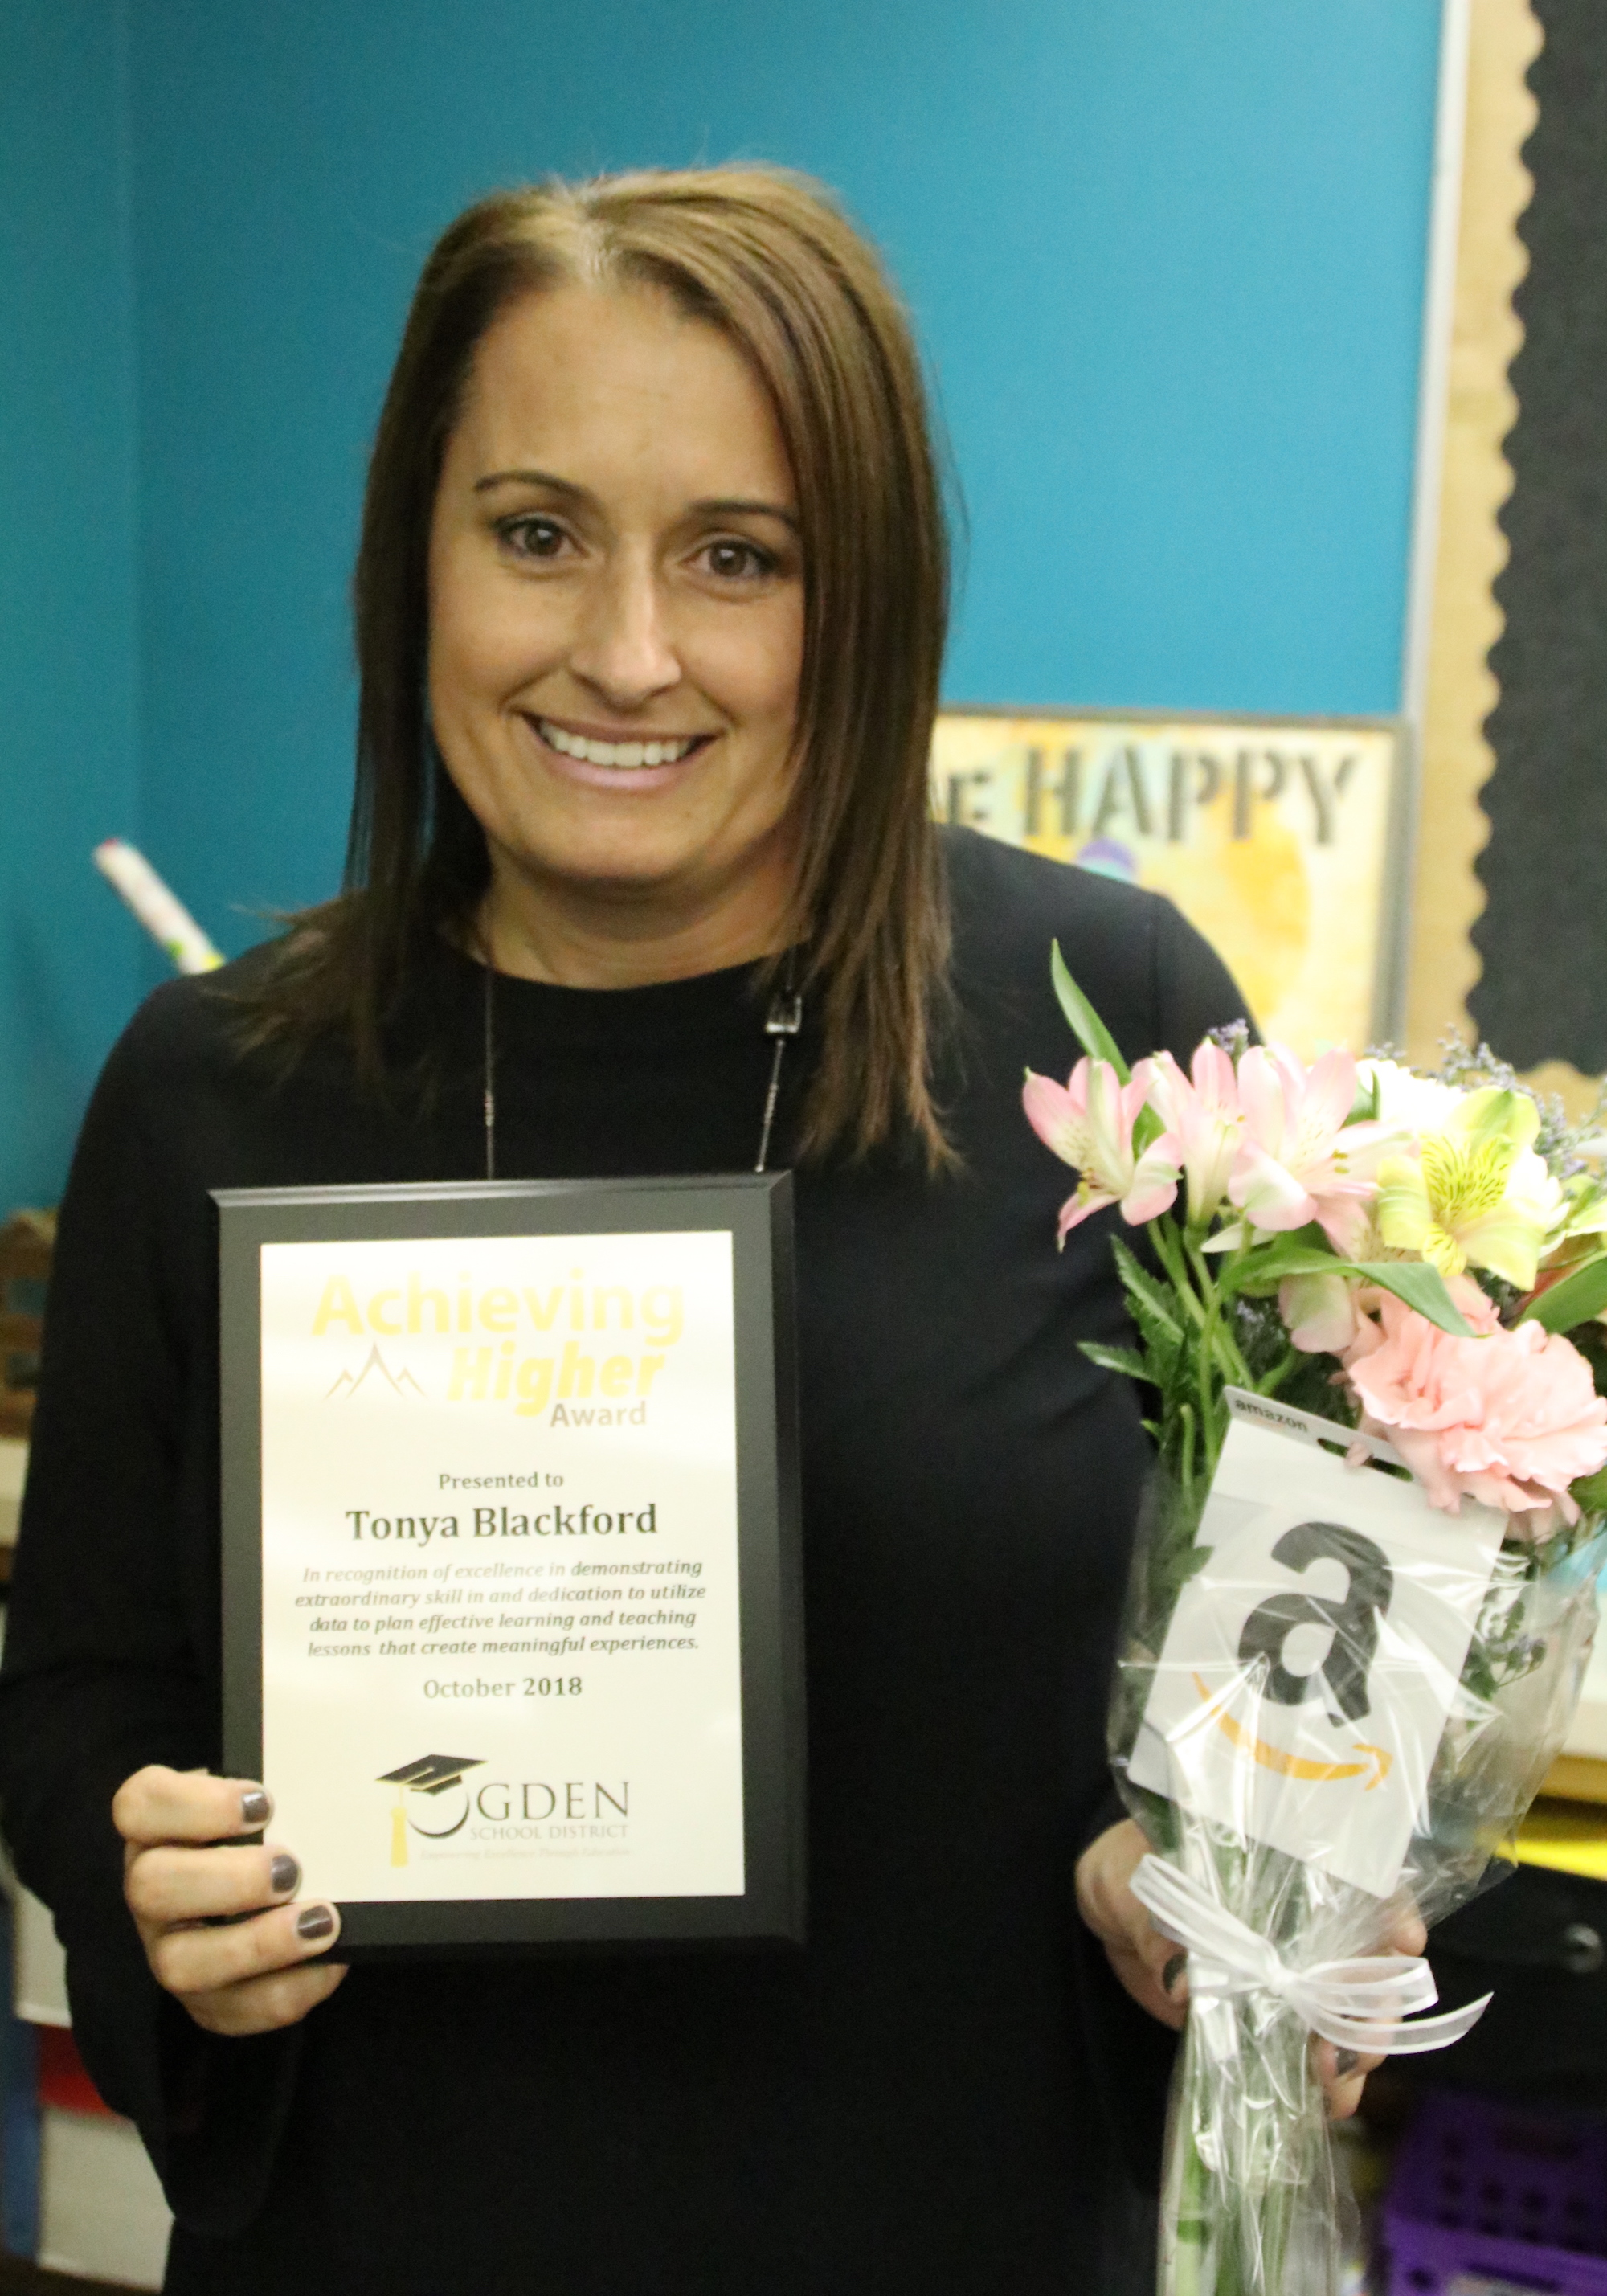 Congratulations Tonya Blackford for being honored with the Achieving Higher Award!